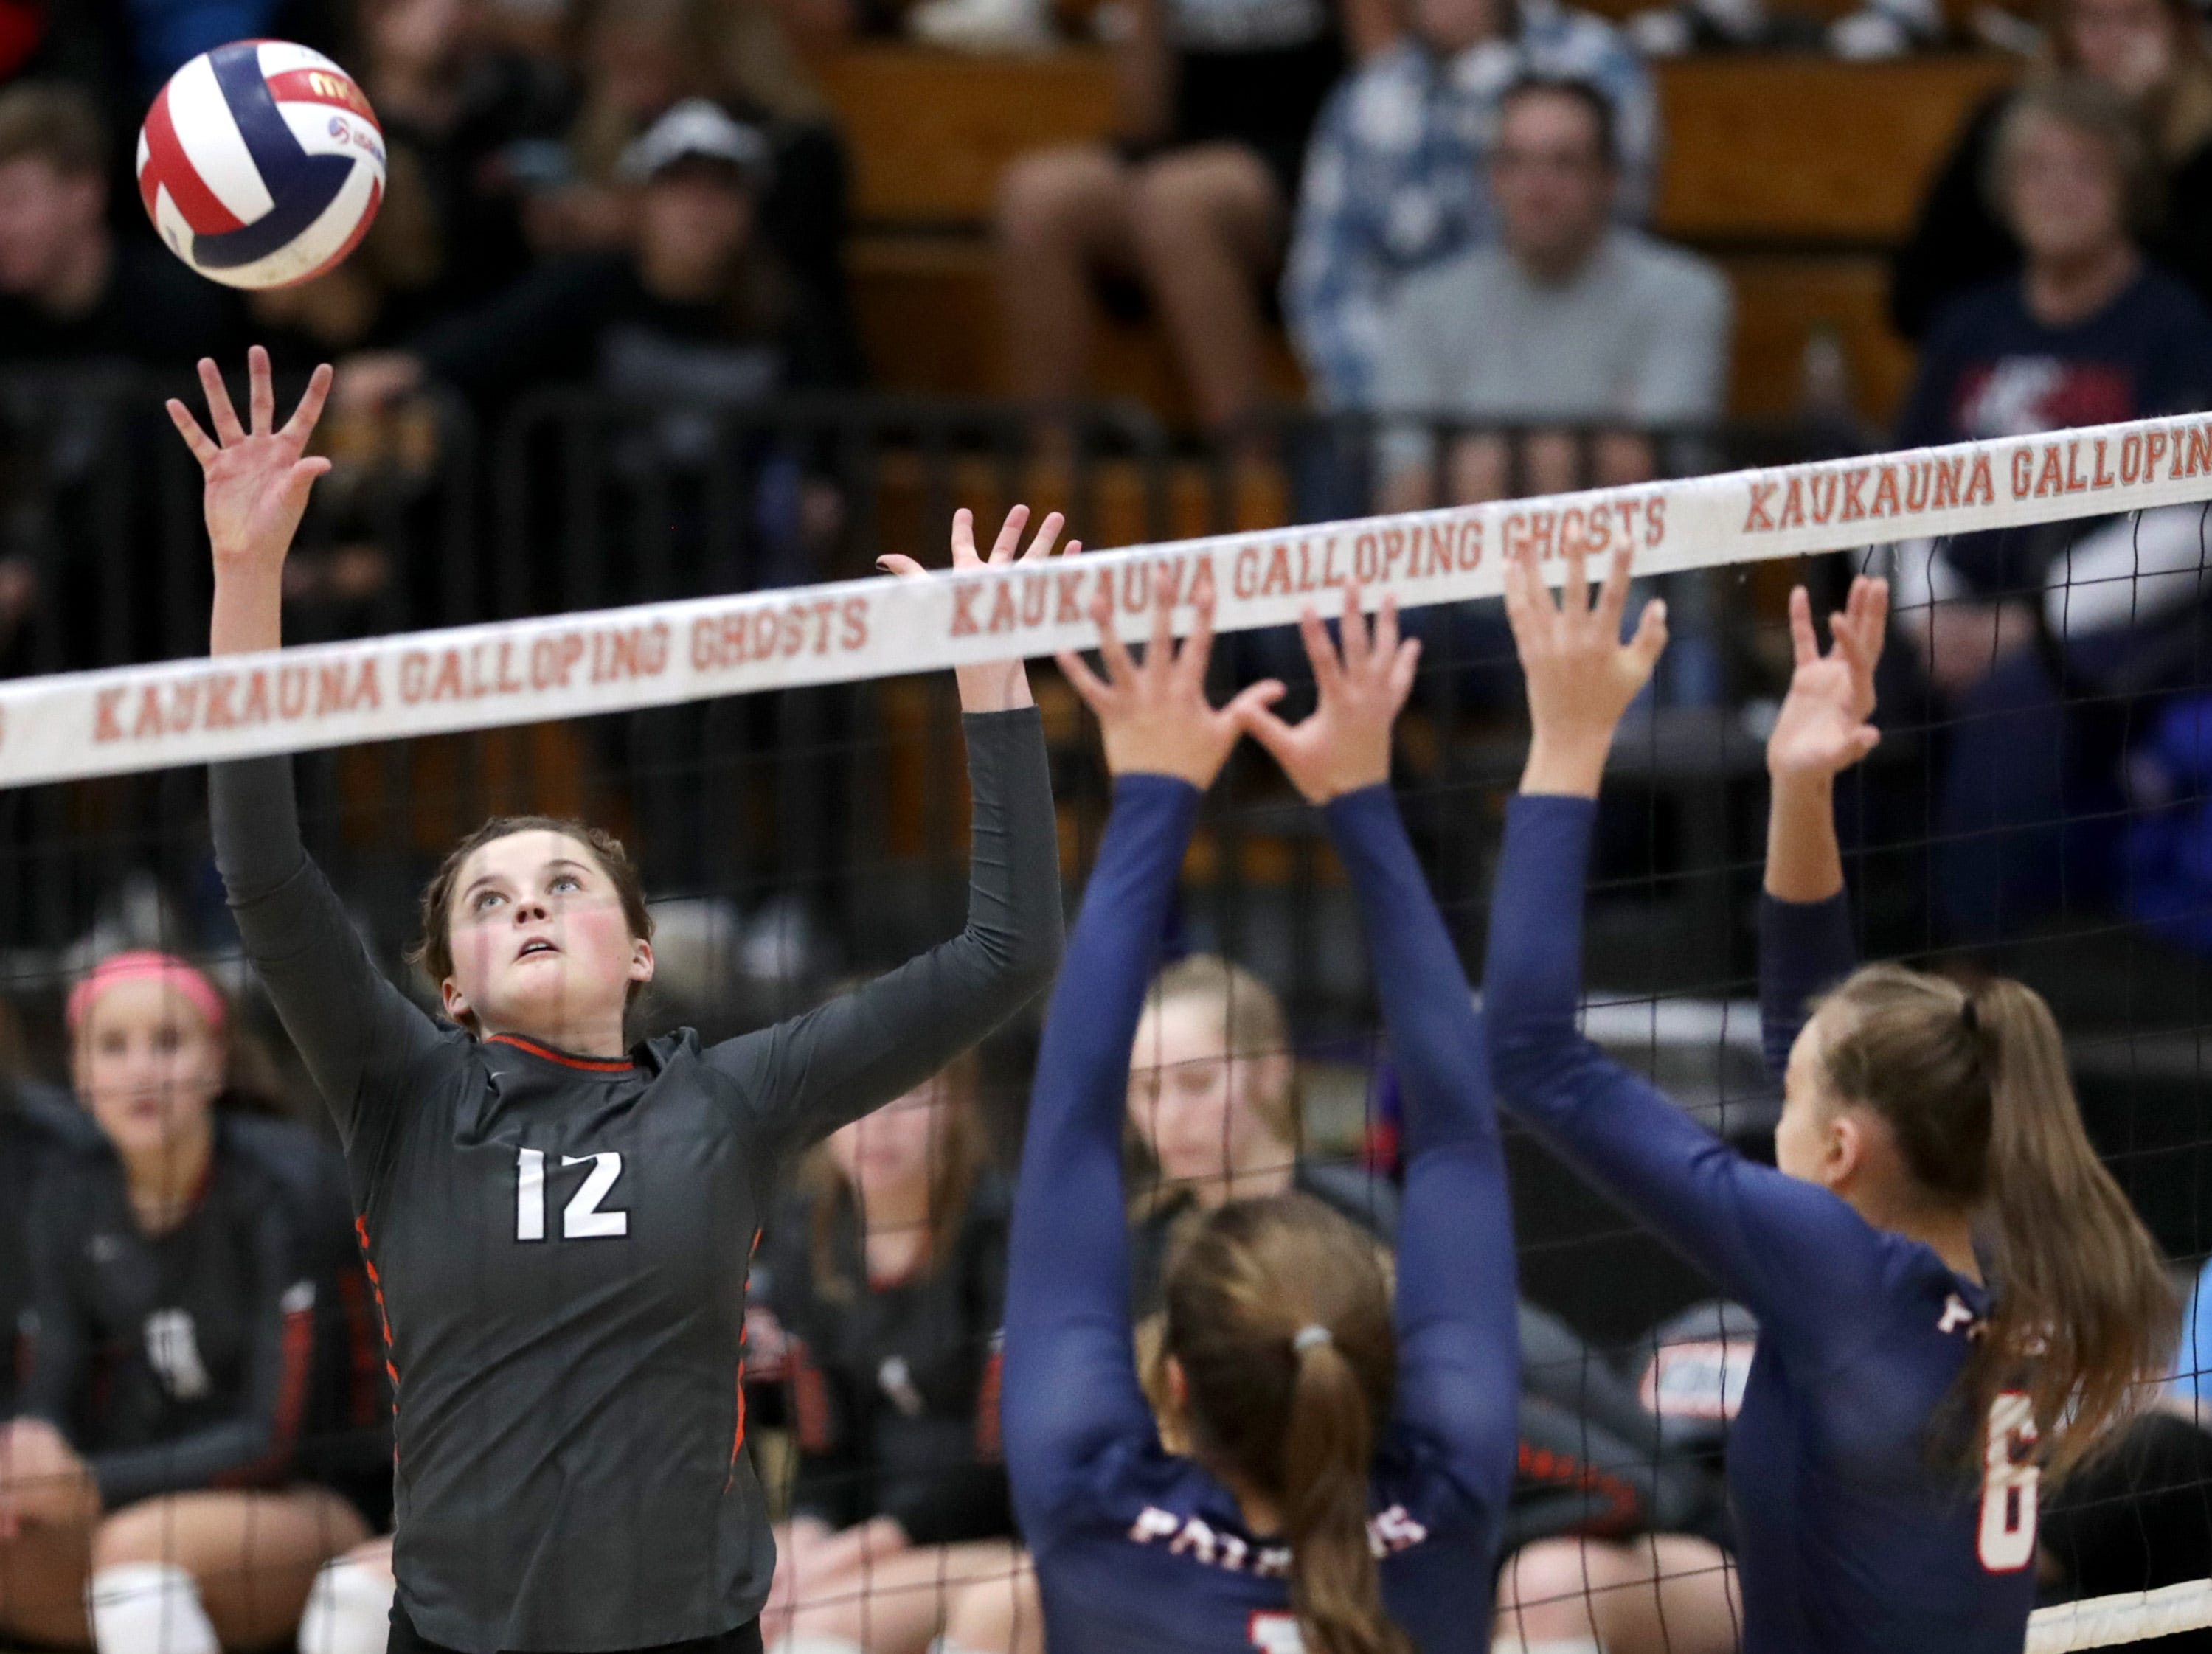 Kaukauna High School's #12 Emily VanDeHey against Appleton East High School's #1 Olivia Meissner and #6 Emily La Chapell during their girls volleyball game on Thursday, October 11, 2018, in Kaukauna, Wis. Wm. Glasheen/USA TODAY NETWORK-Wisconsin.